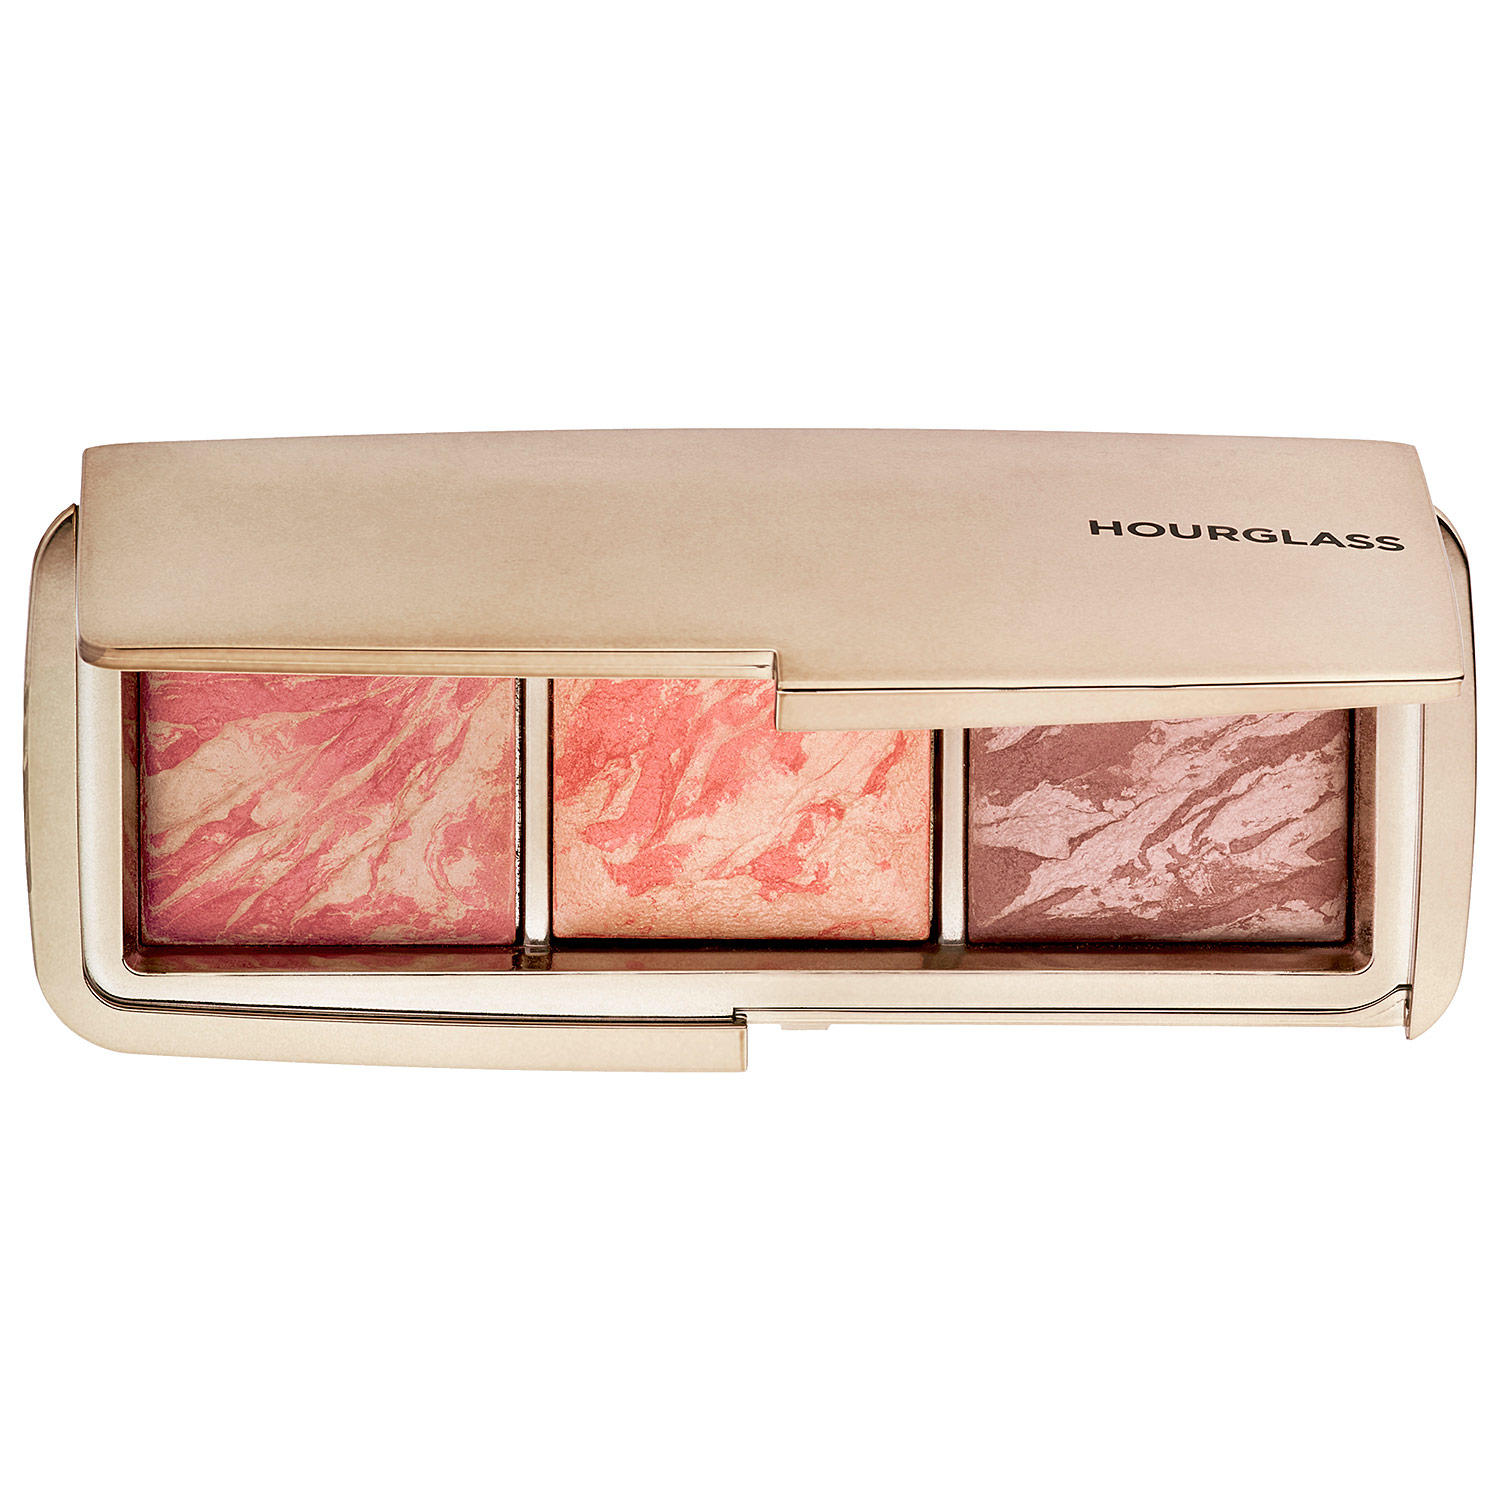 Hourglass Ambient Lighting Blush Palette  sc 1 st  Glambot.com & Hourglass Ambient Lighting Blush Palette | Glambot.com - Best ... azcodes.com